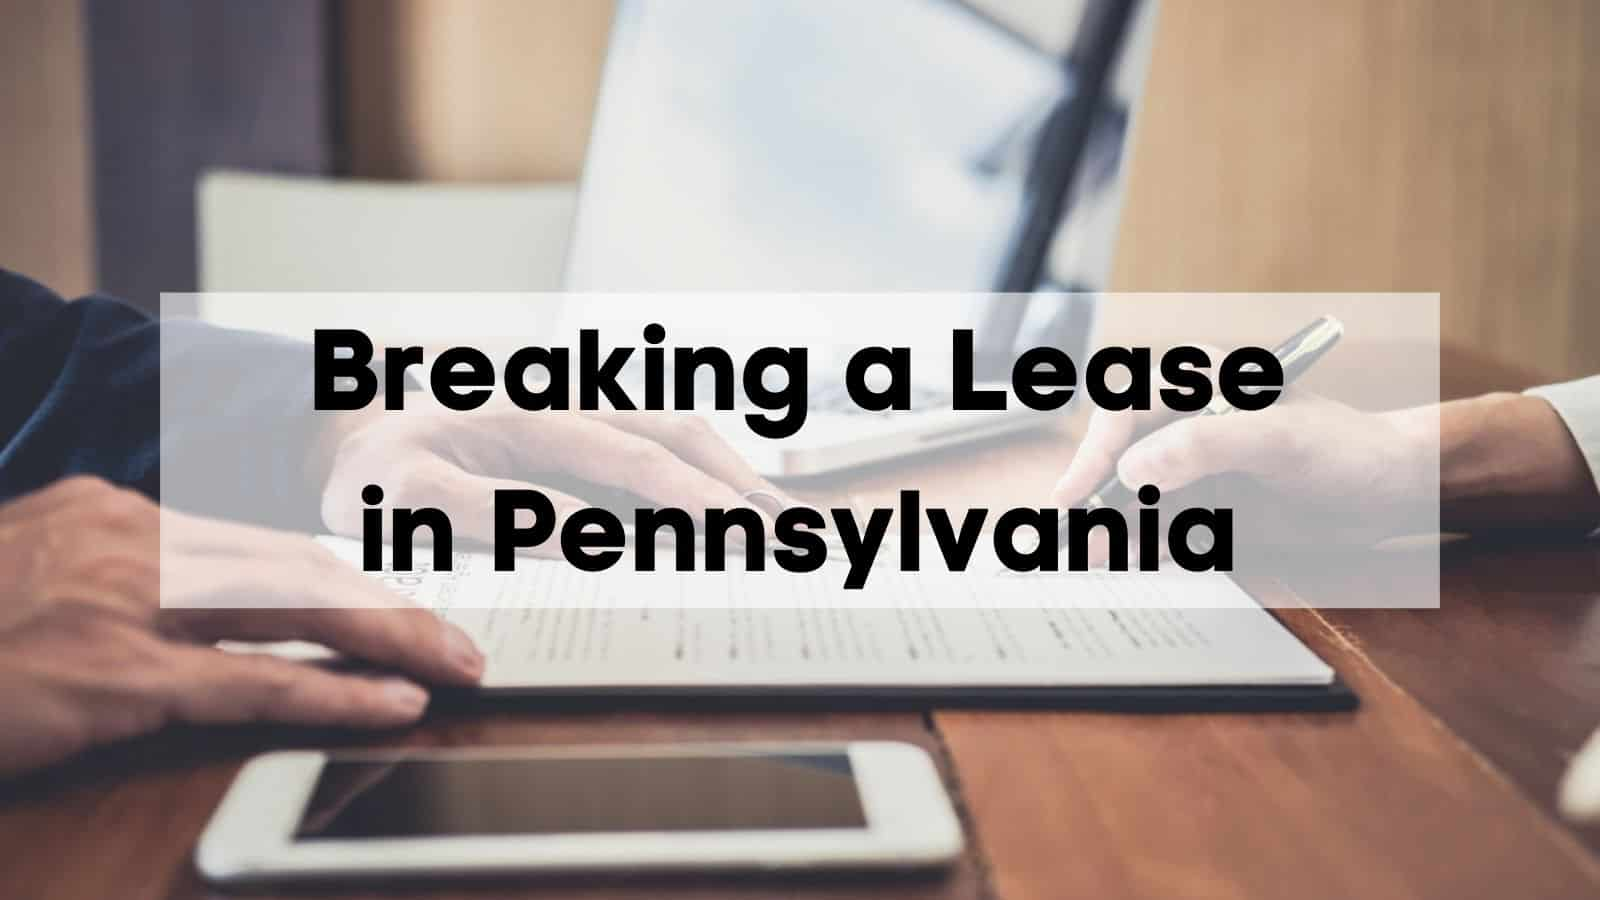 Breaking a Lease in Pennsylvania